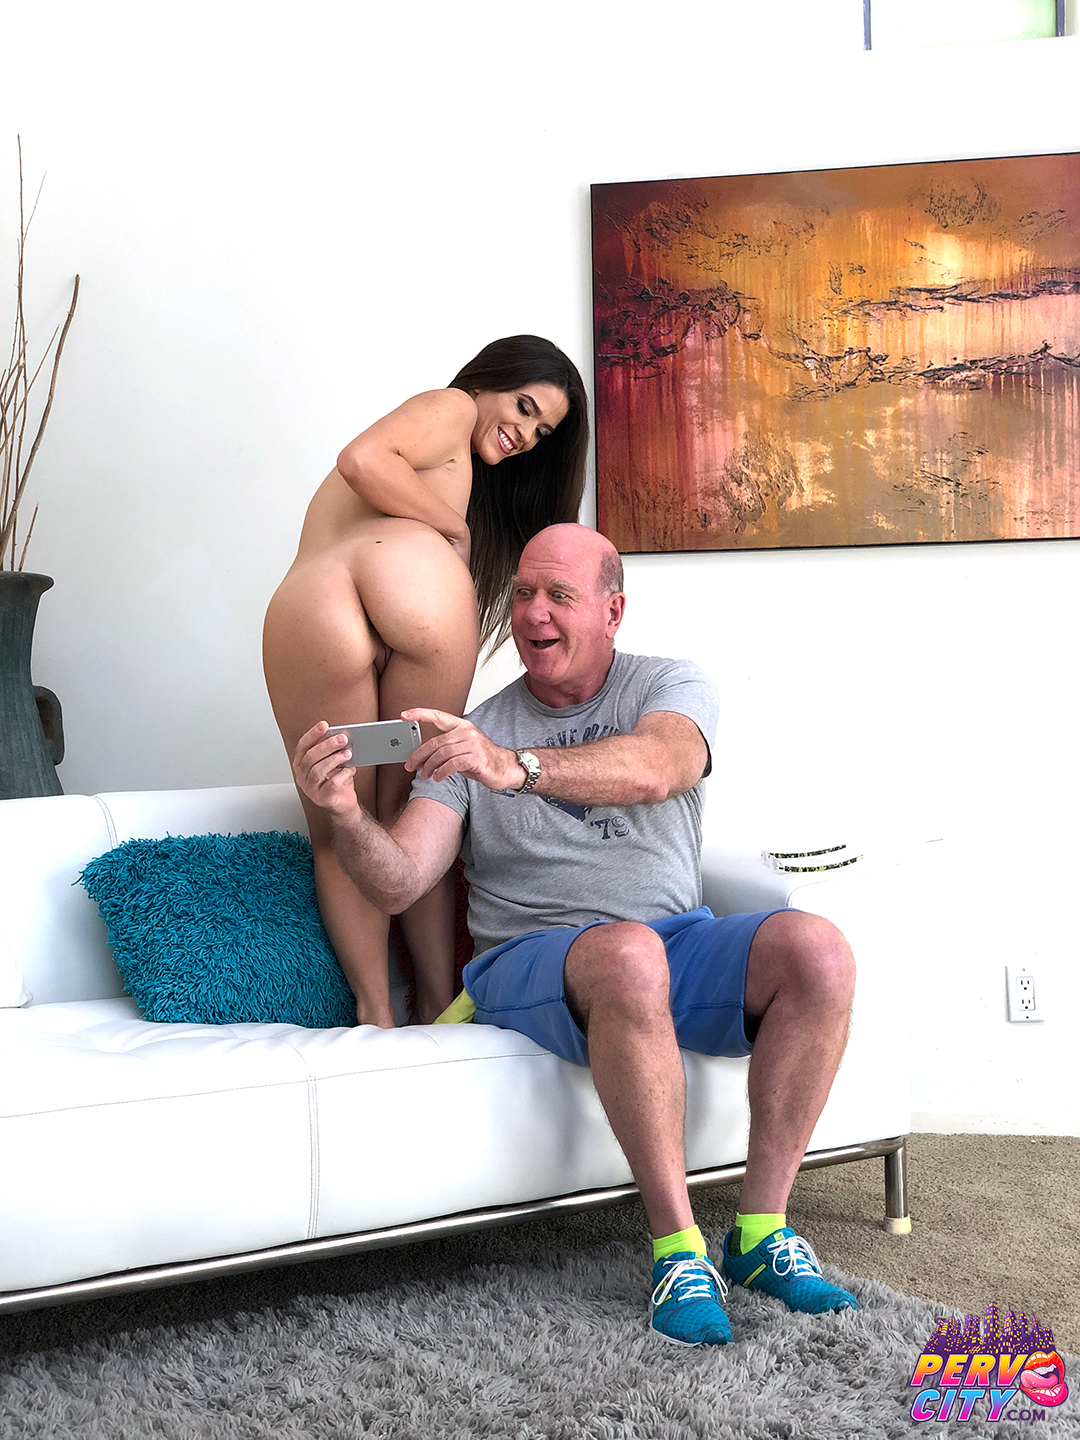 Victoria Voxxx Interracial Anal Behind the Scenes